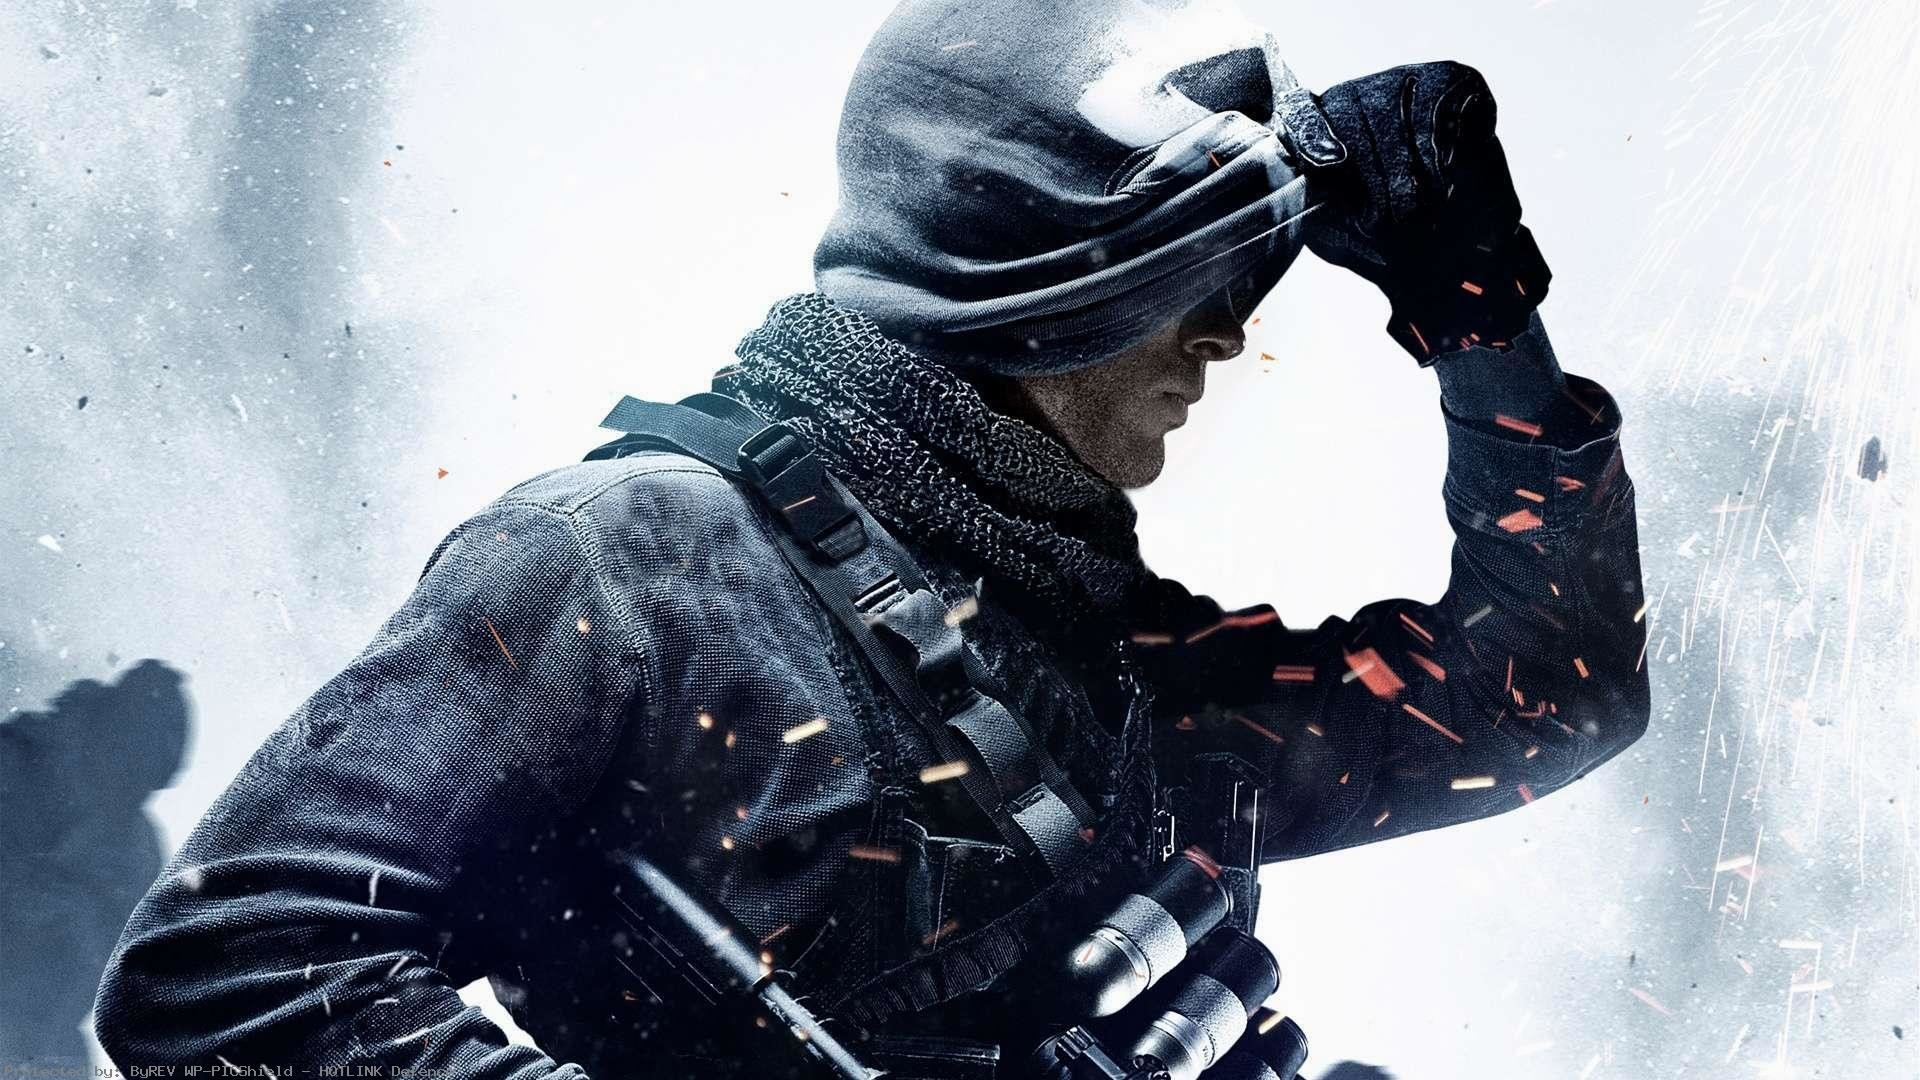 Call-Of-Duty-Ghosts-Game-HD-1080p-wallpaper-